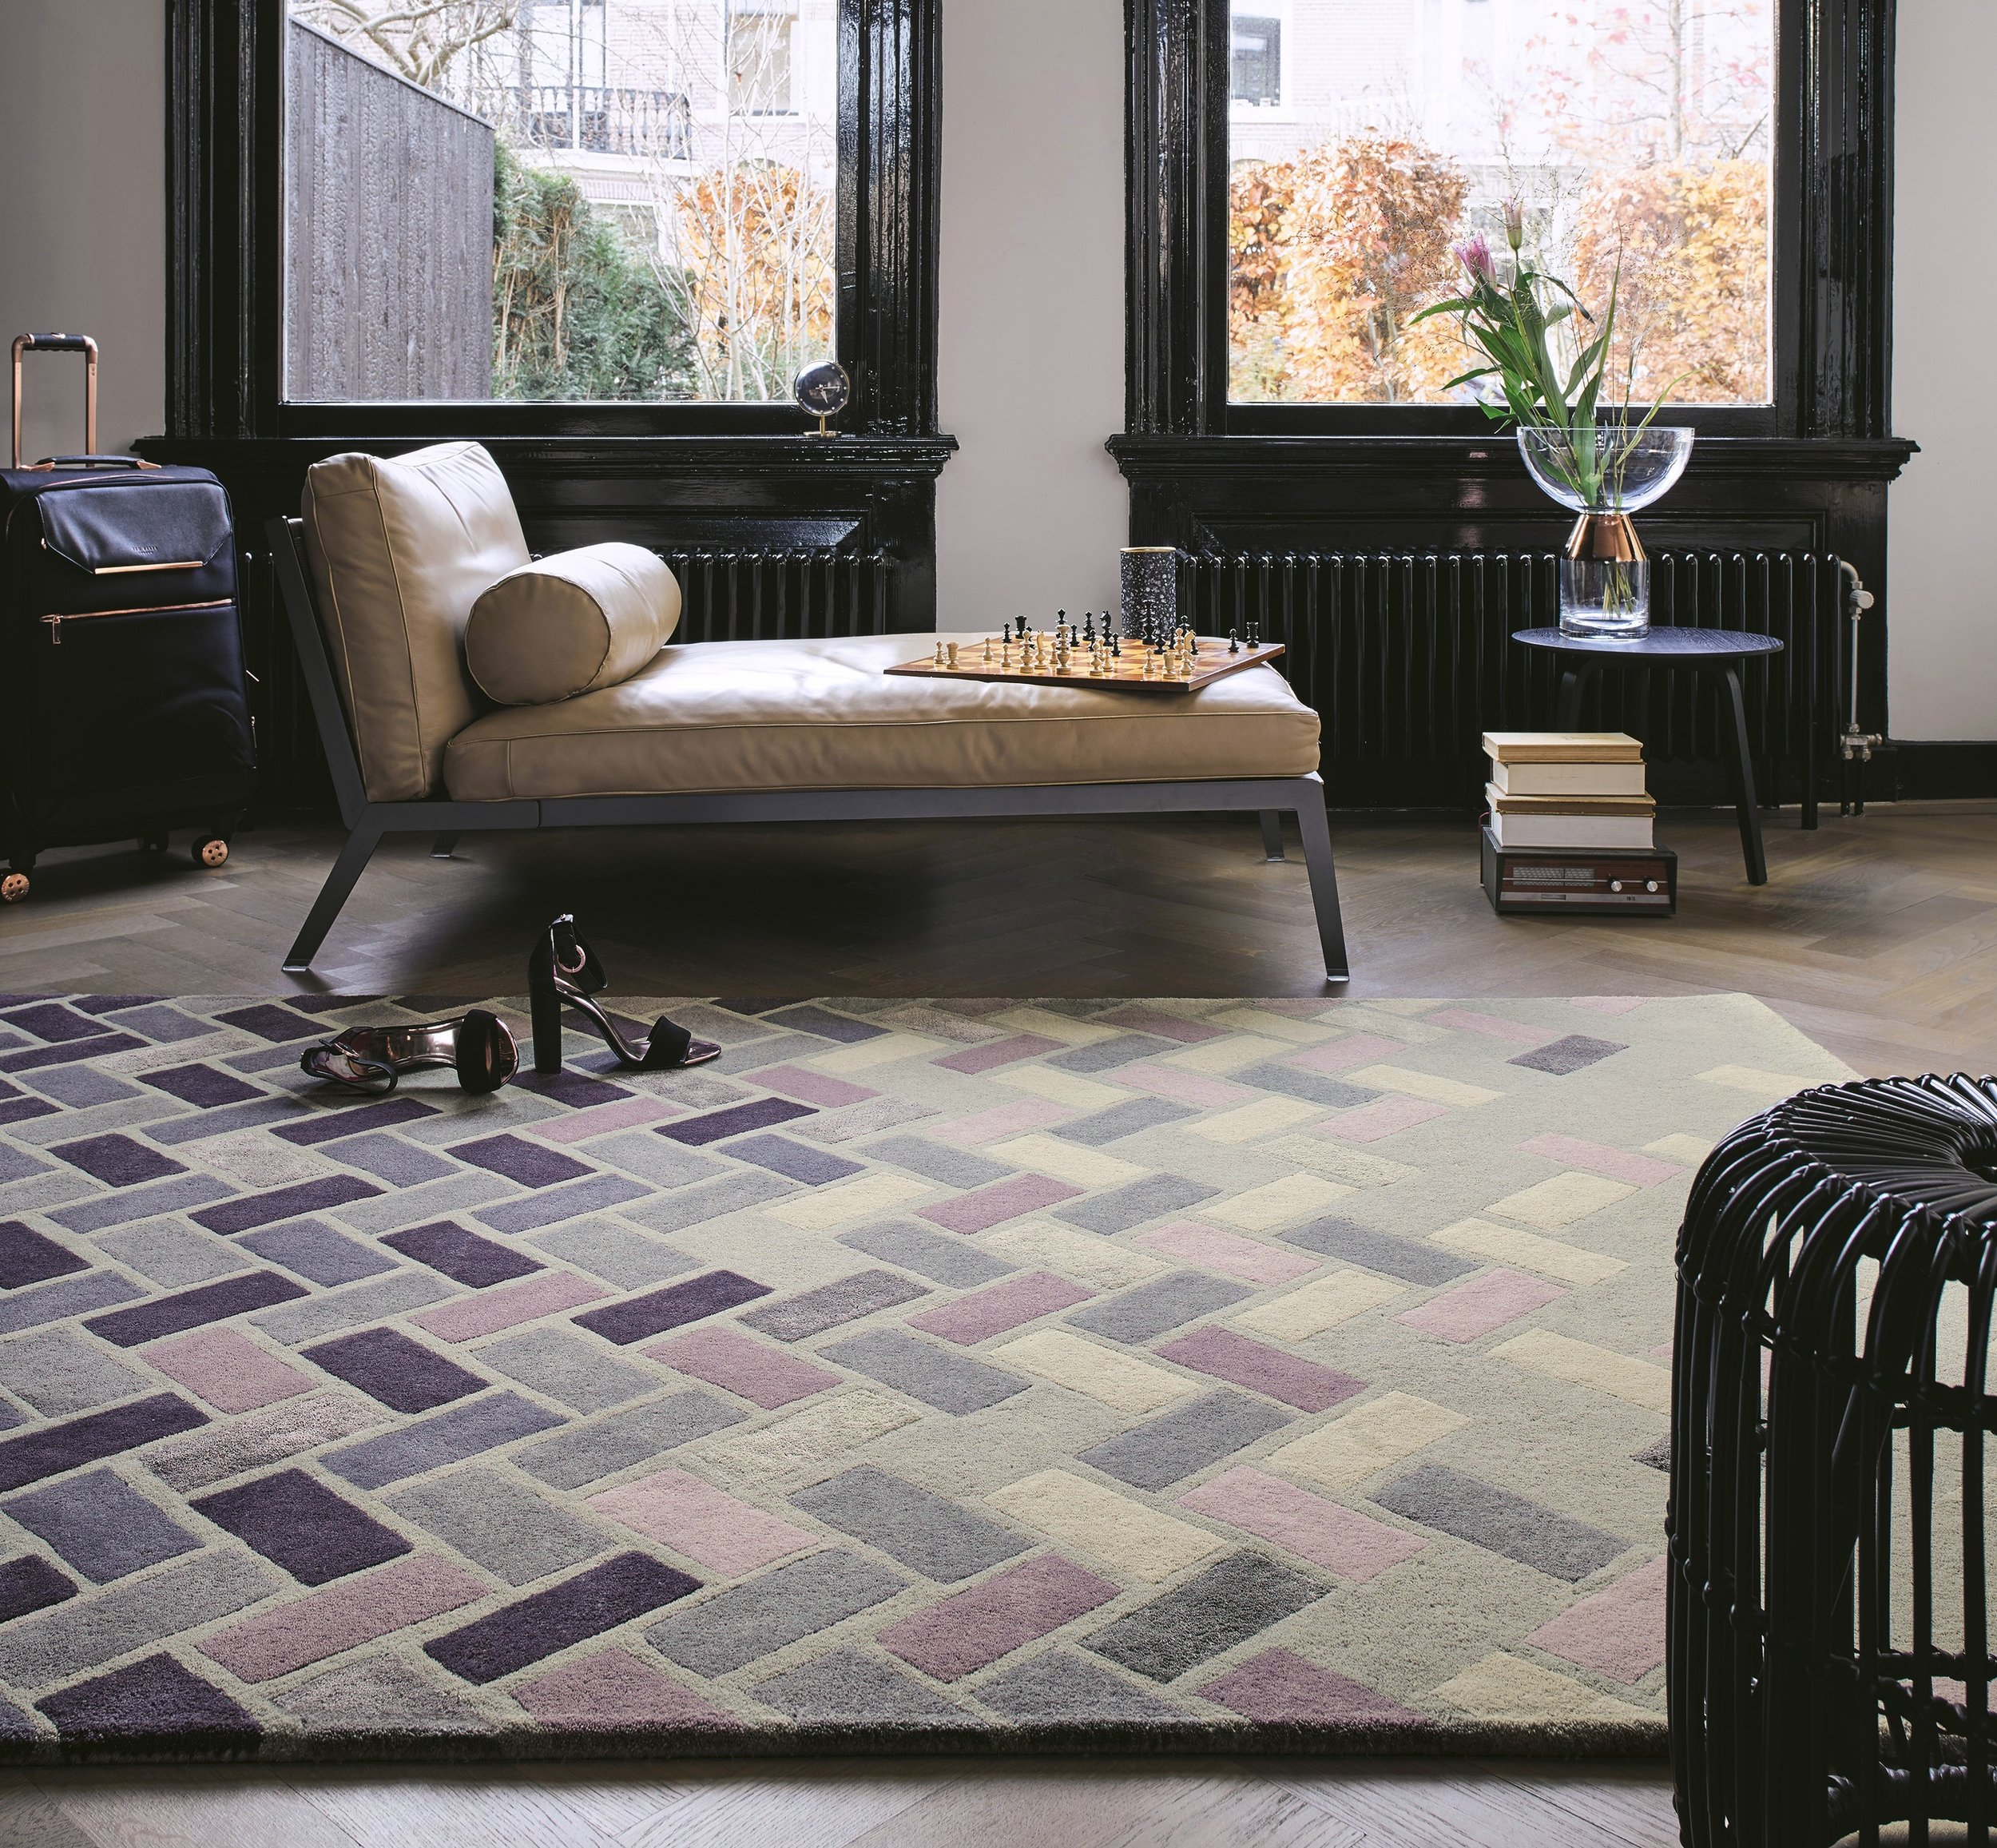 Agave Ash Grey Rug (also in Deep Purple), available in three sizes, prices from £399